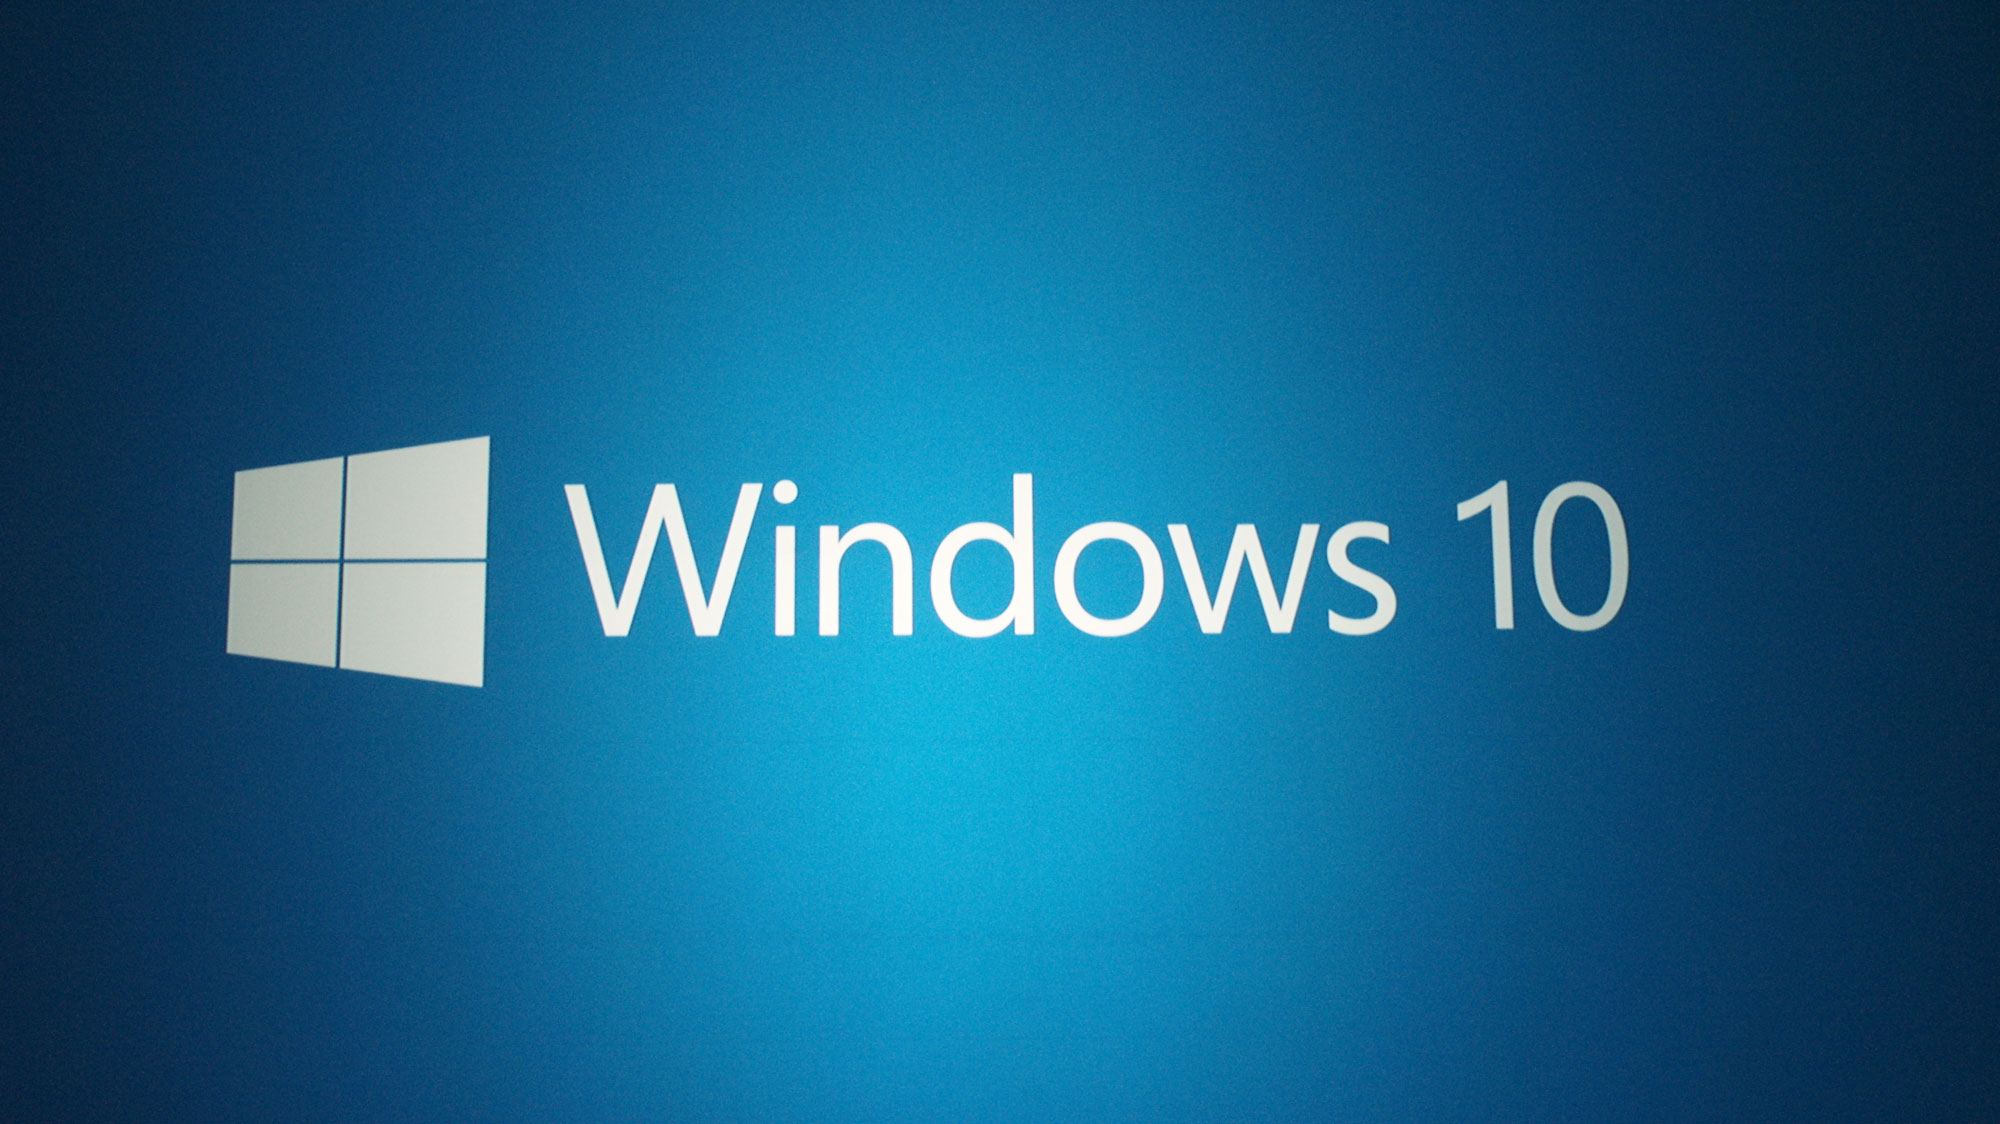 Windows 10… ma perché?